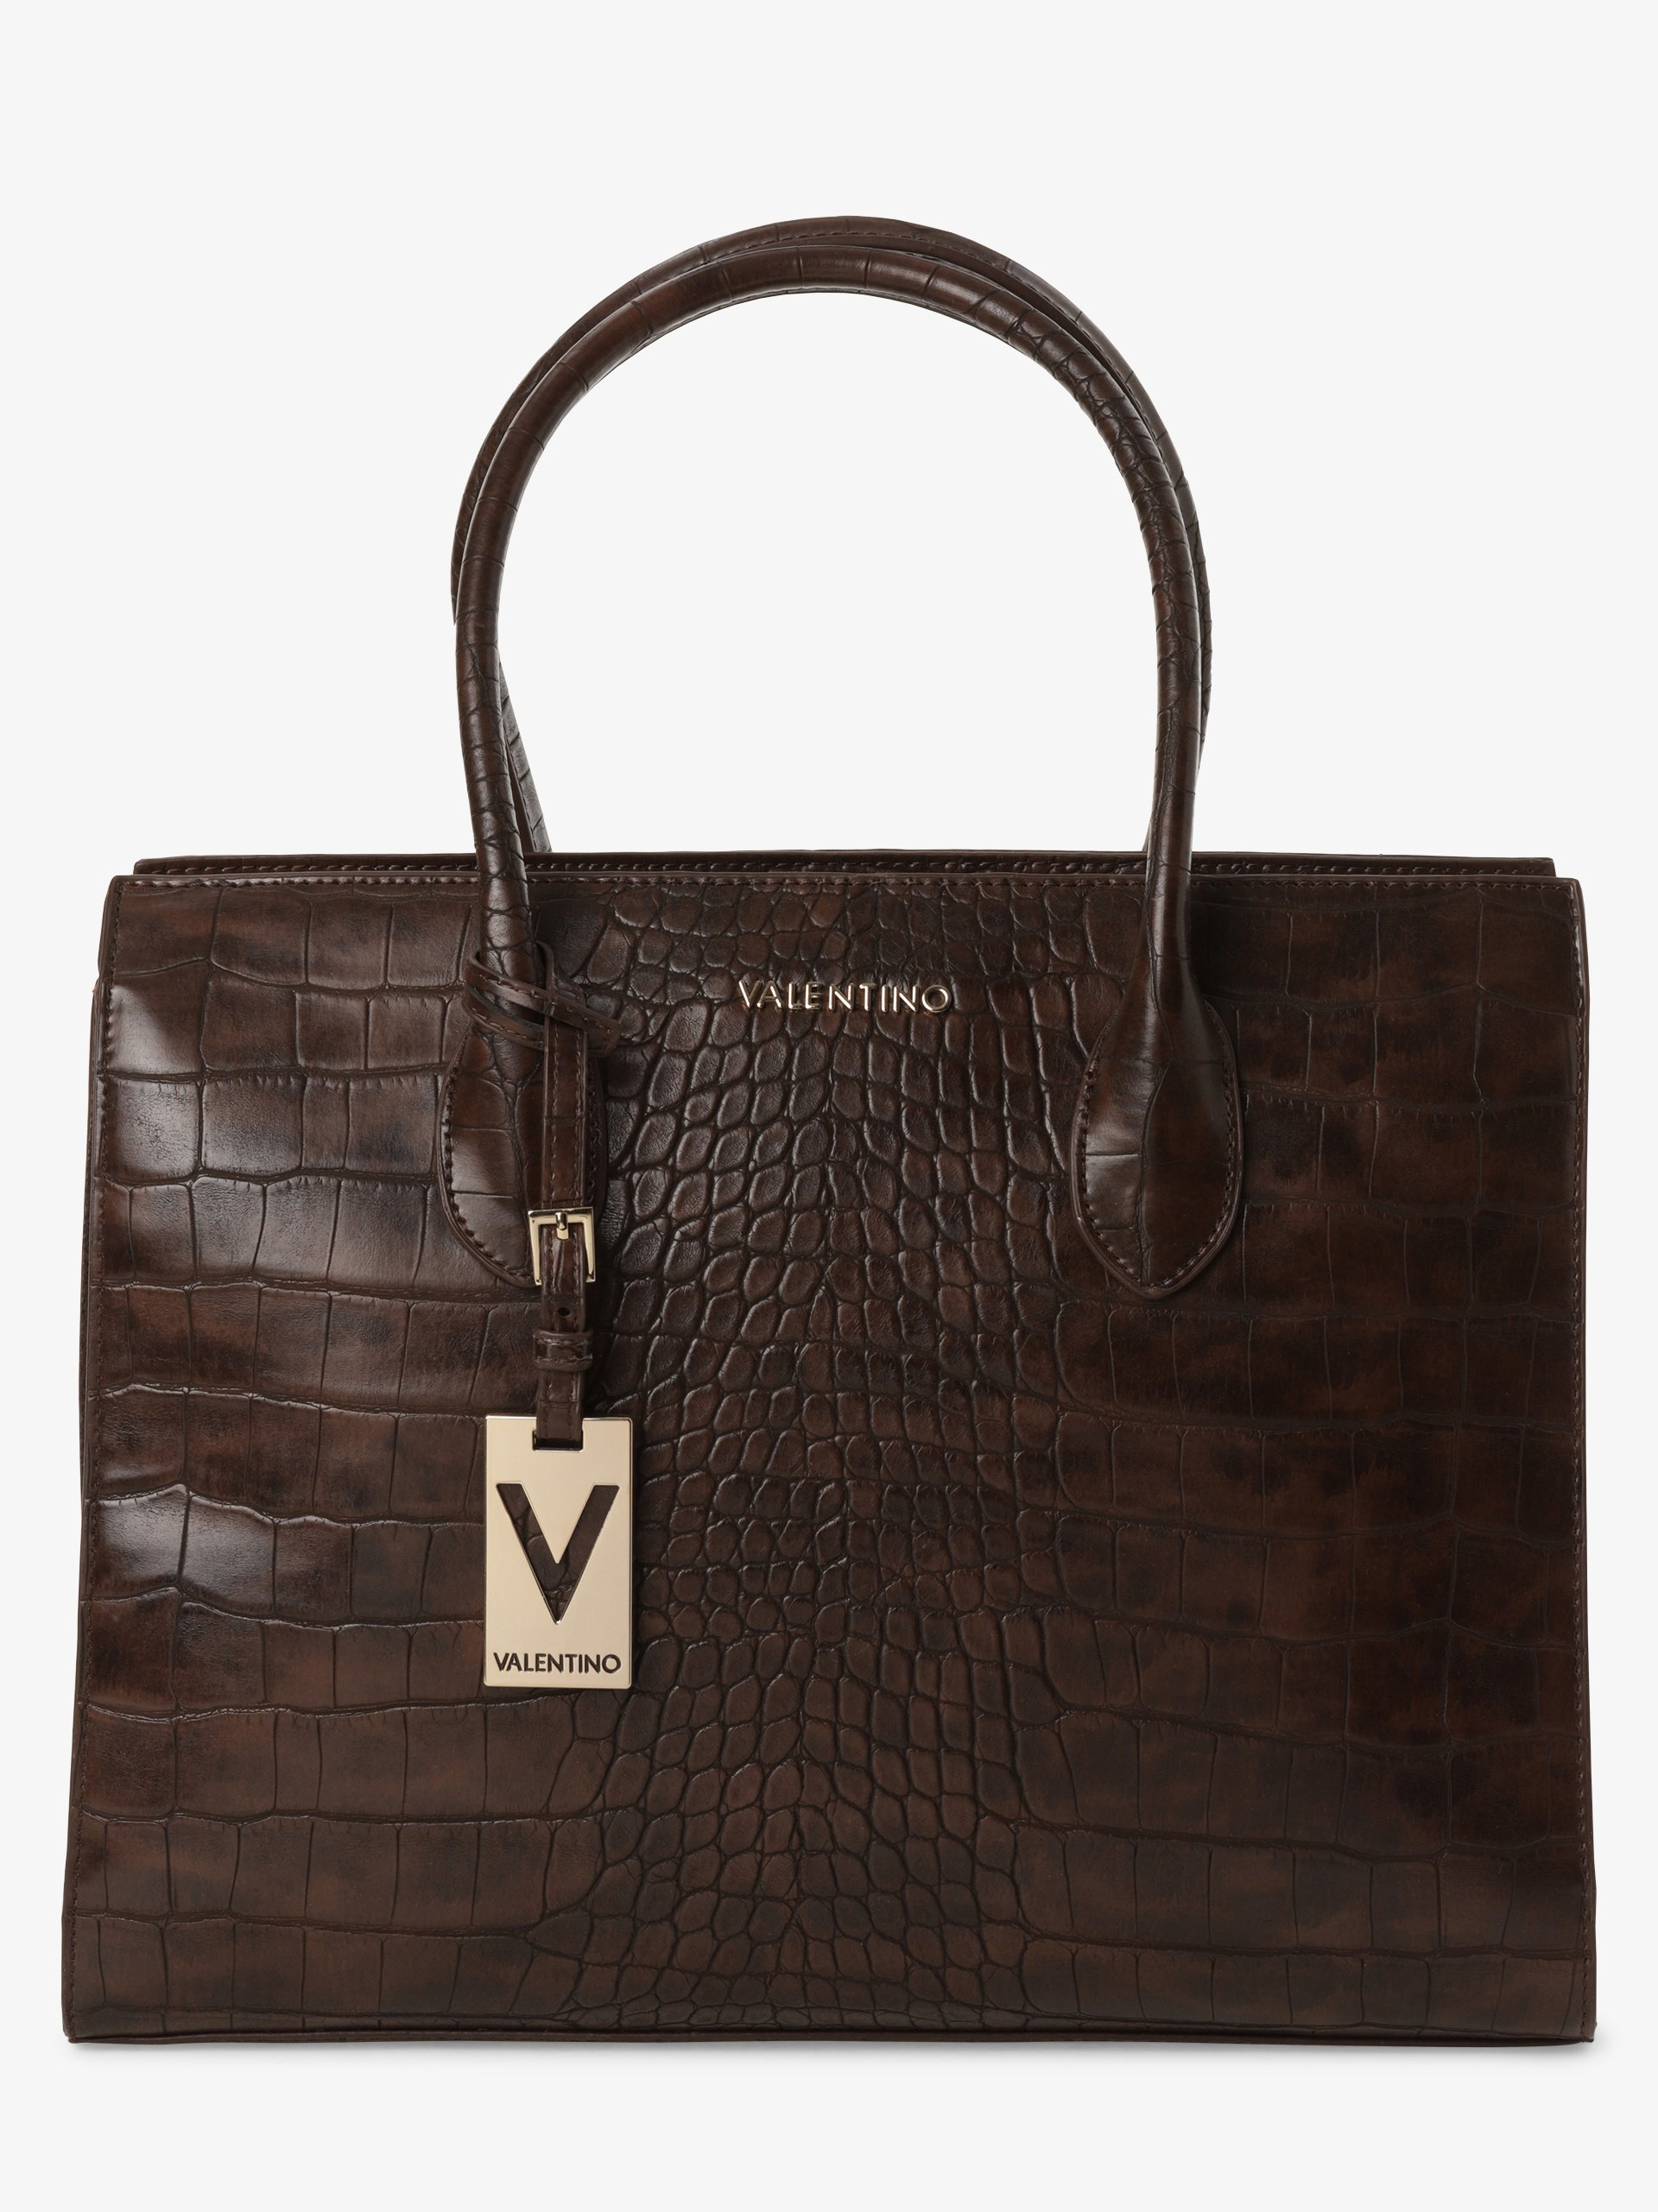 VALENTINO HANDBAGS Damska torba shopper – Winter Memento